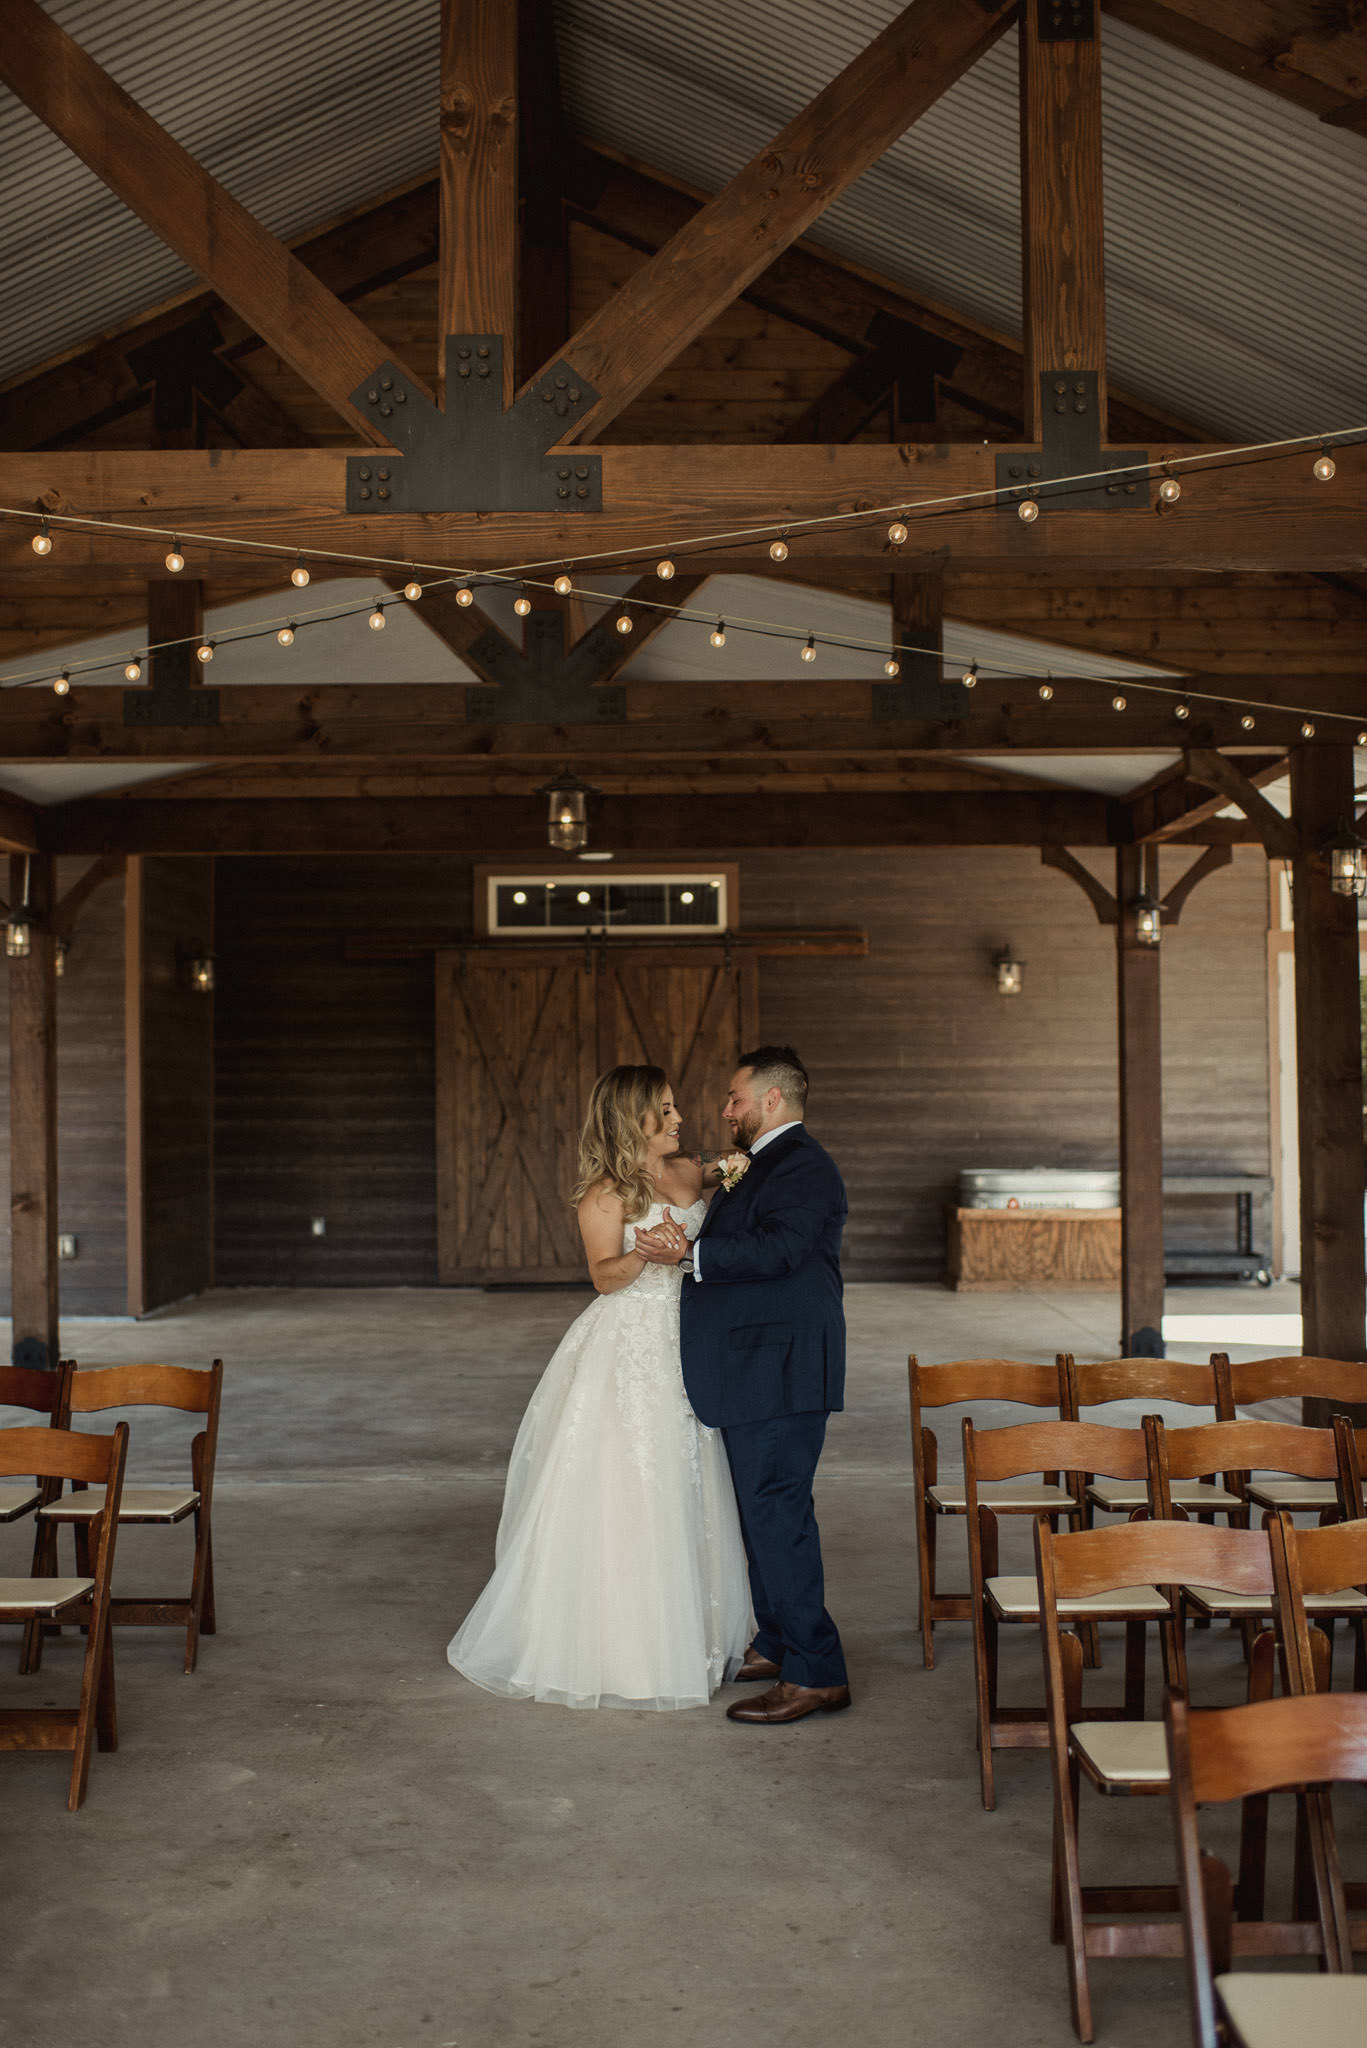 stephanie-gabe-peach-creek-ranch-wedding-college-station-houston-photographer-46.jpg